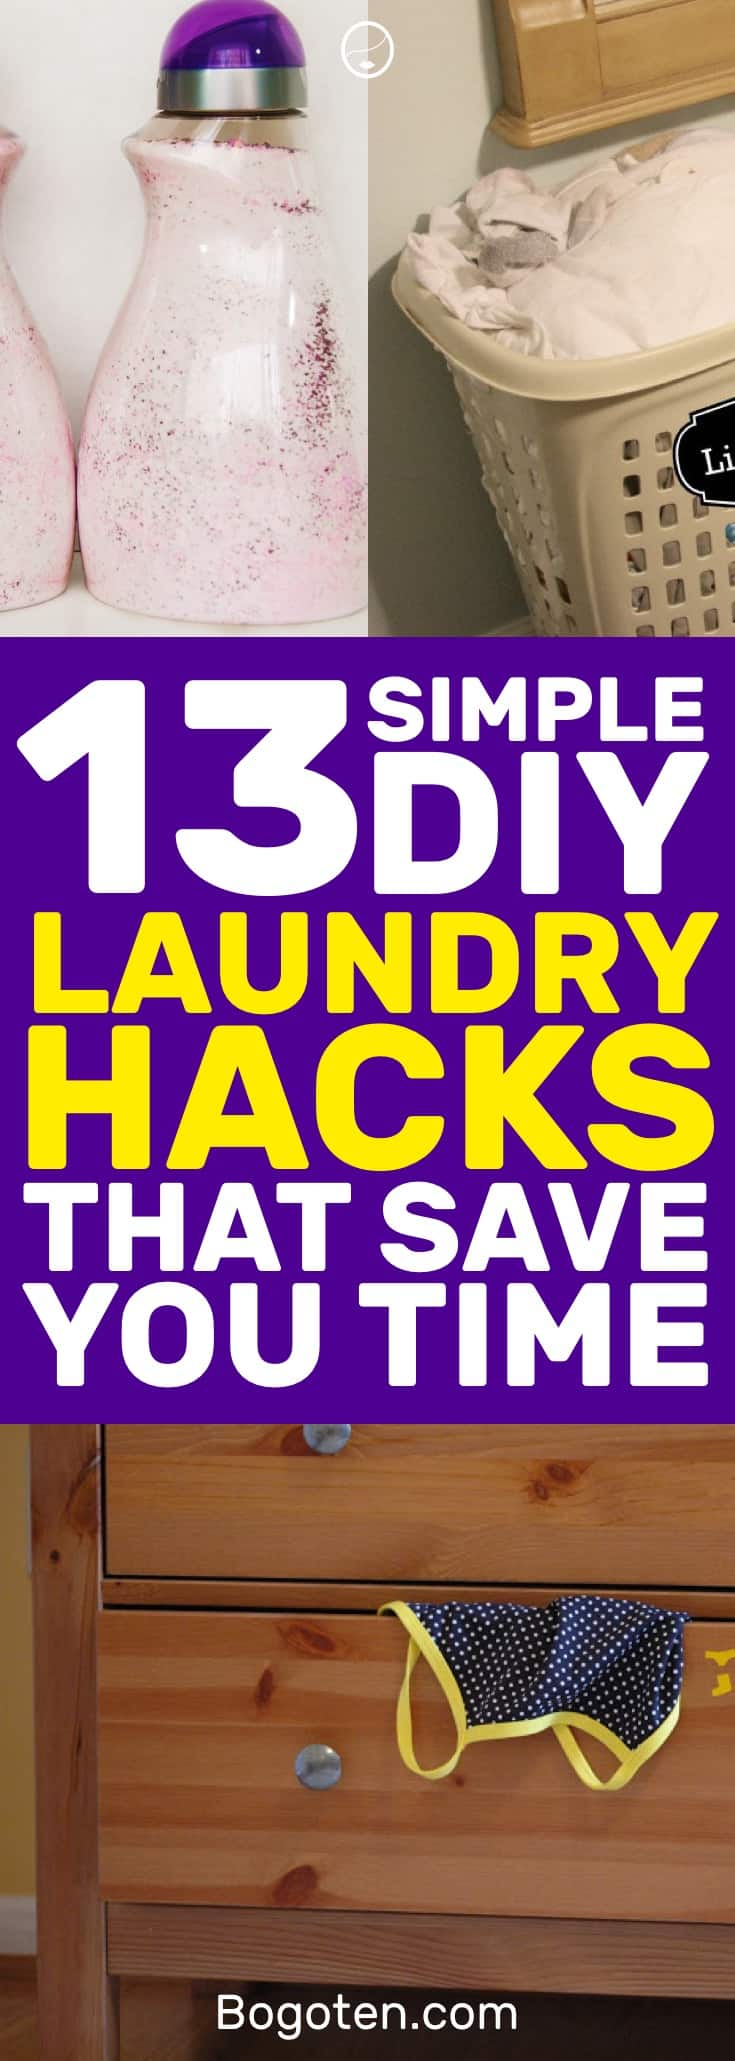 Laundry sucks but that doesn't mean it can't be better. I love these laundry DIY hacks to make laundry a lot easier. #DIY #Cleaning #Chores #Laundry